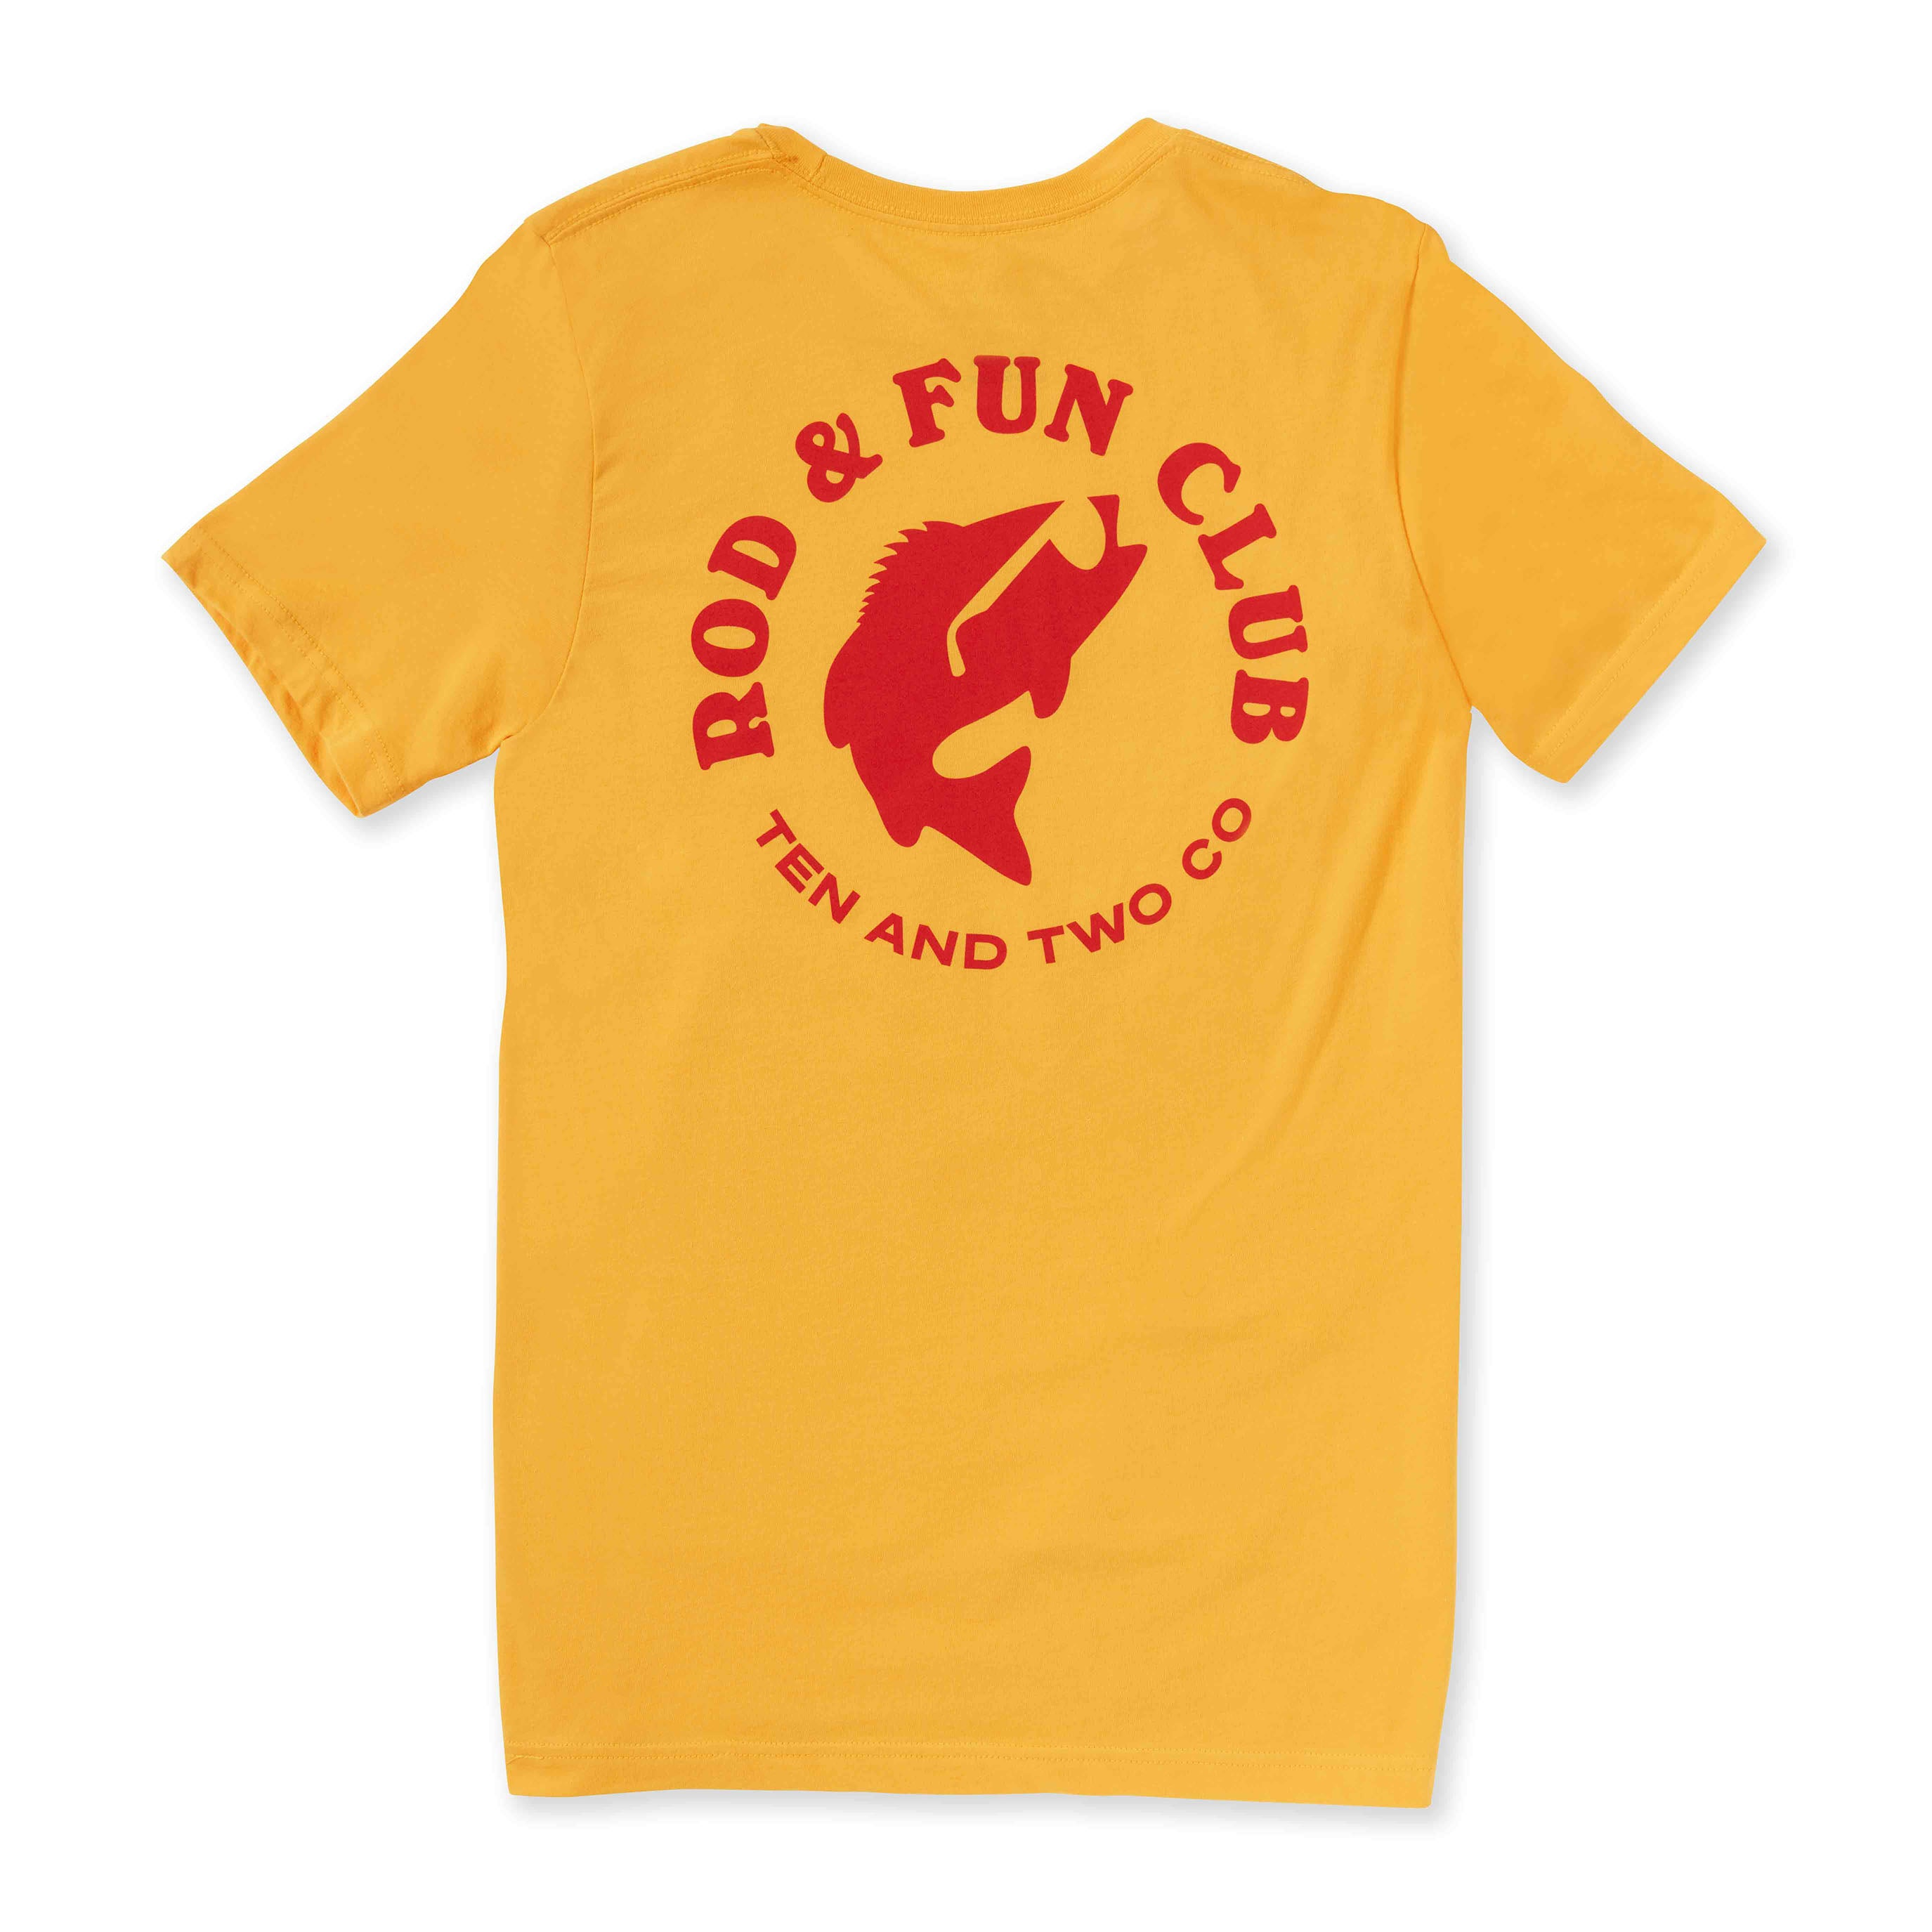 Rod and Fun Club Tee